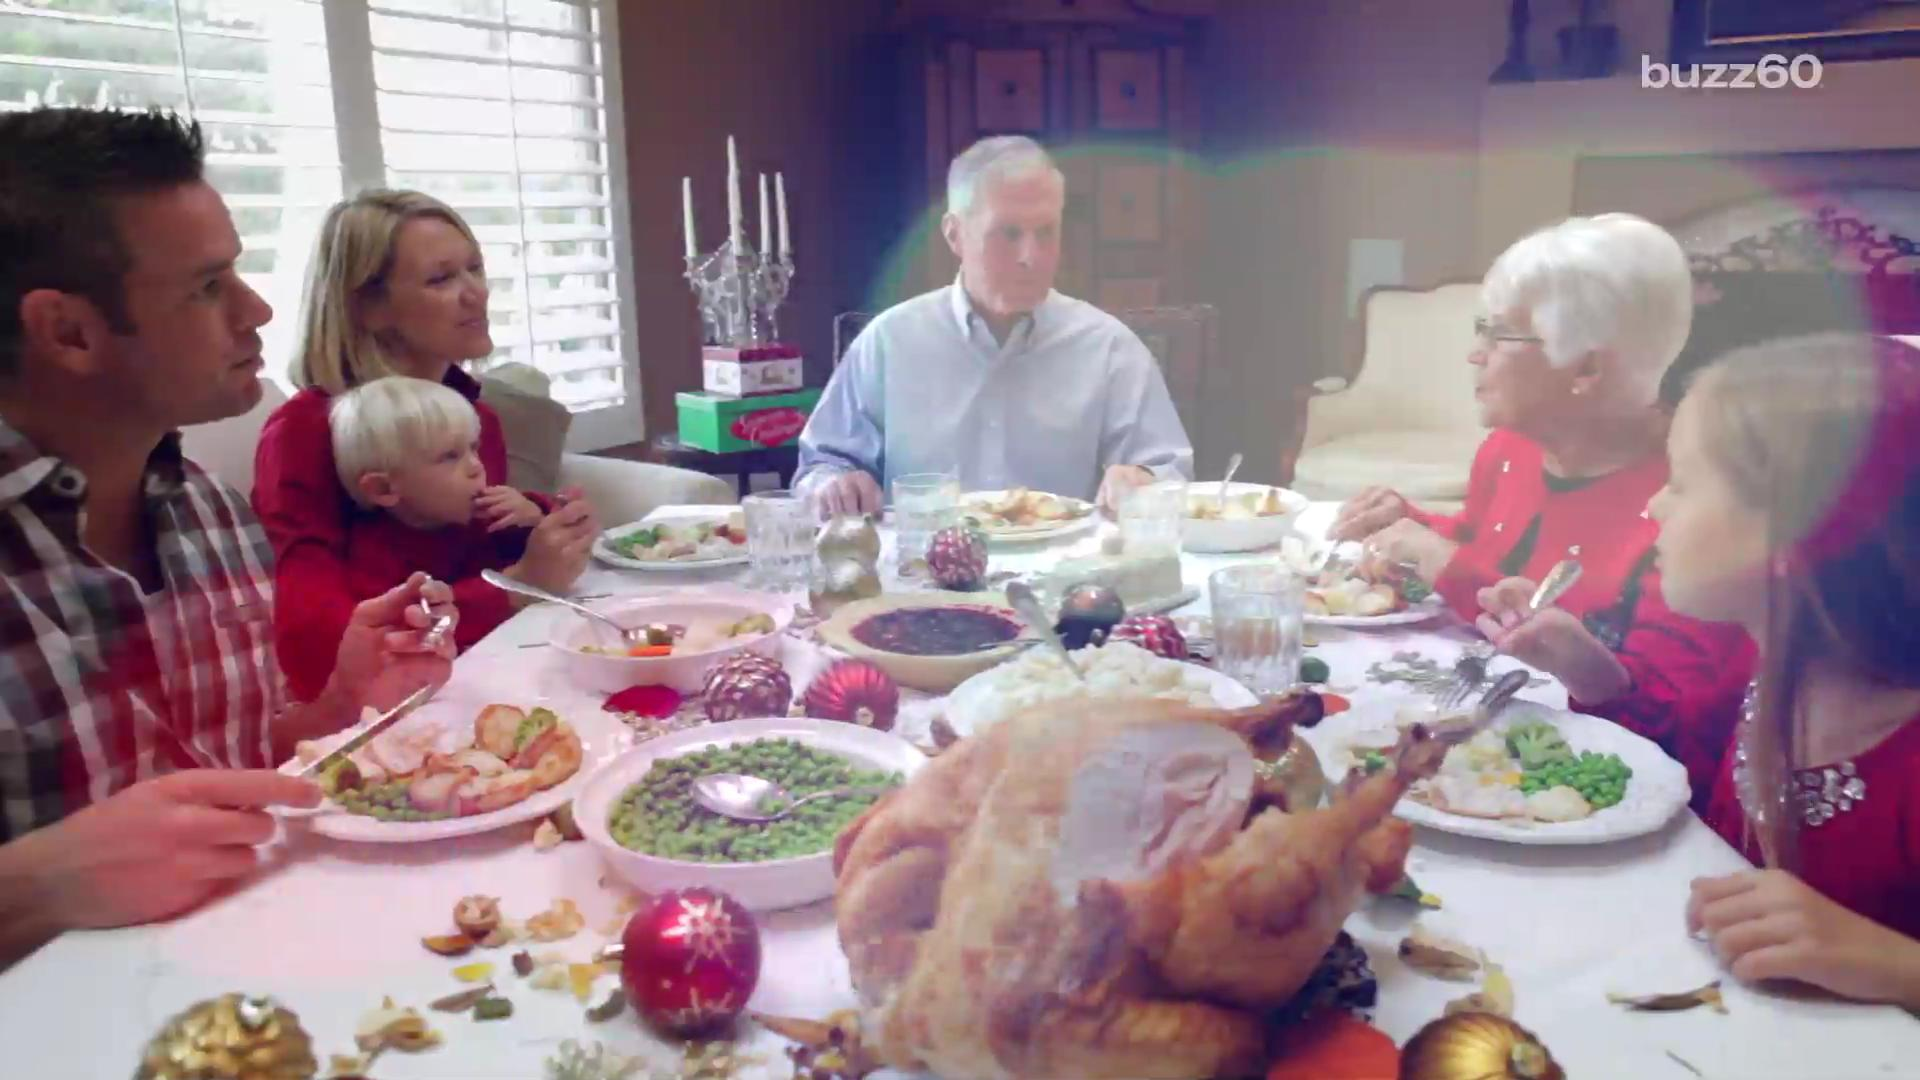 5 scary questions you'll face from family this Thanksgiving